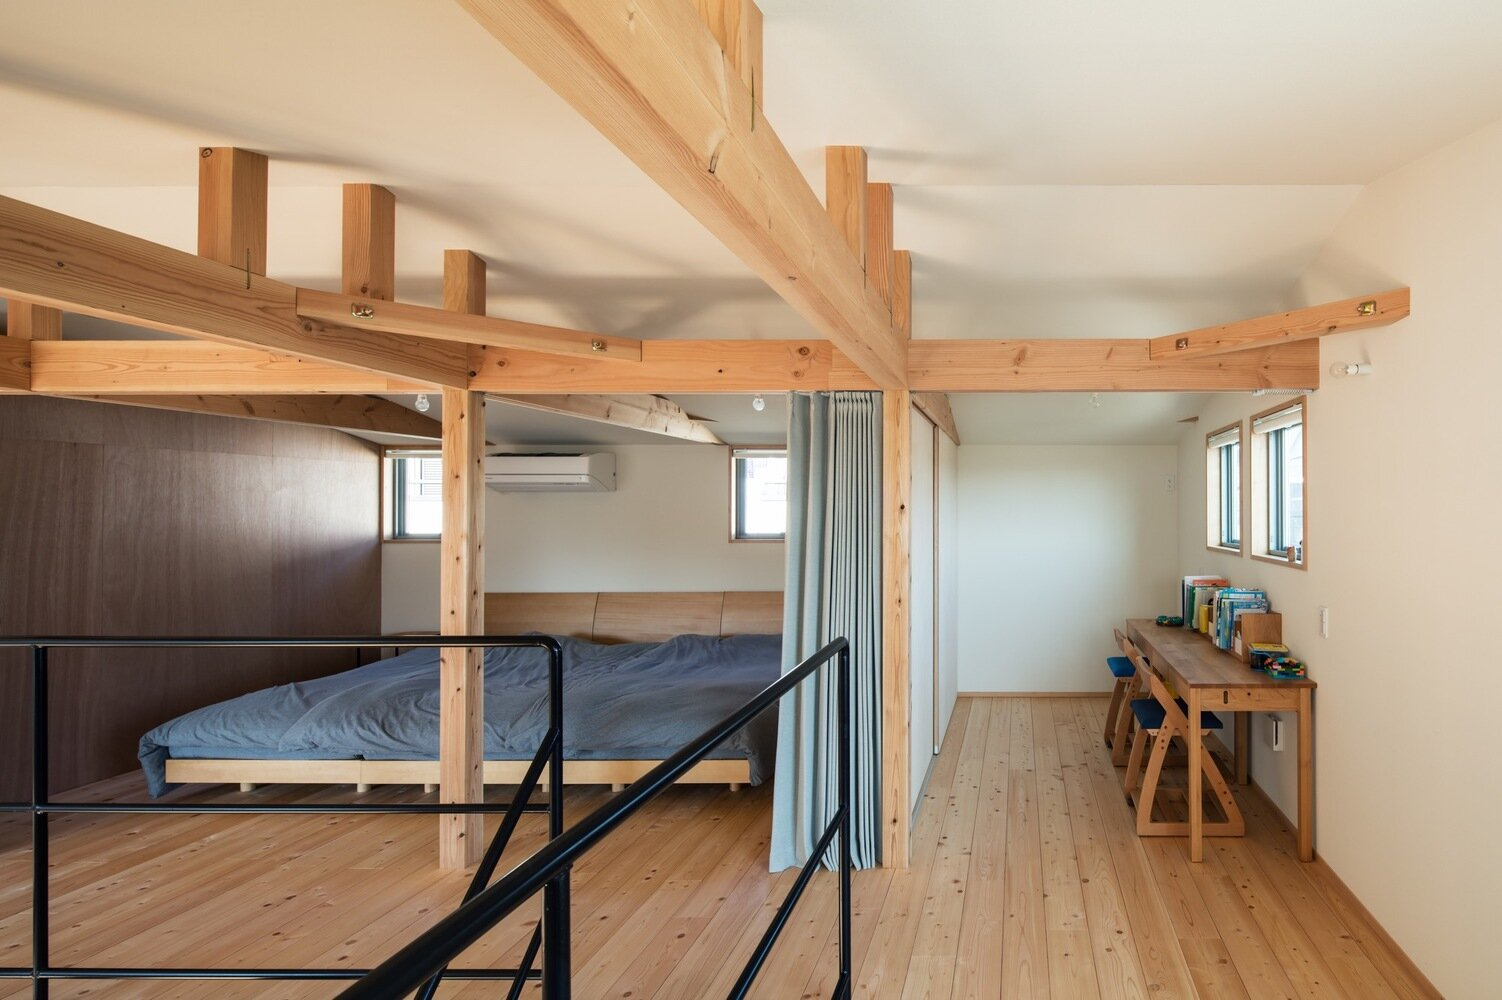 S-House - Coil Kazuteru Matumura Architects - Japan - Bedroom - Humble Homes